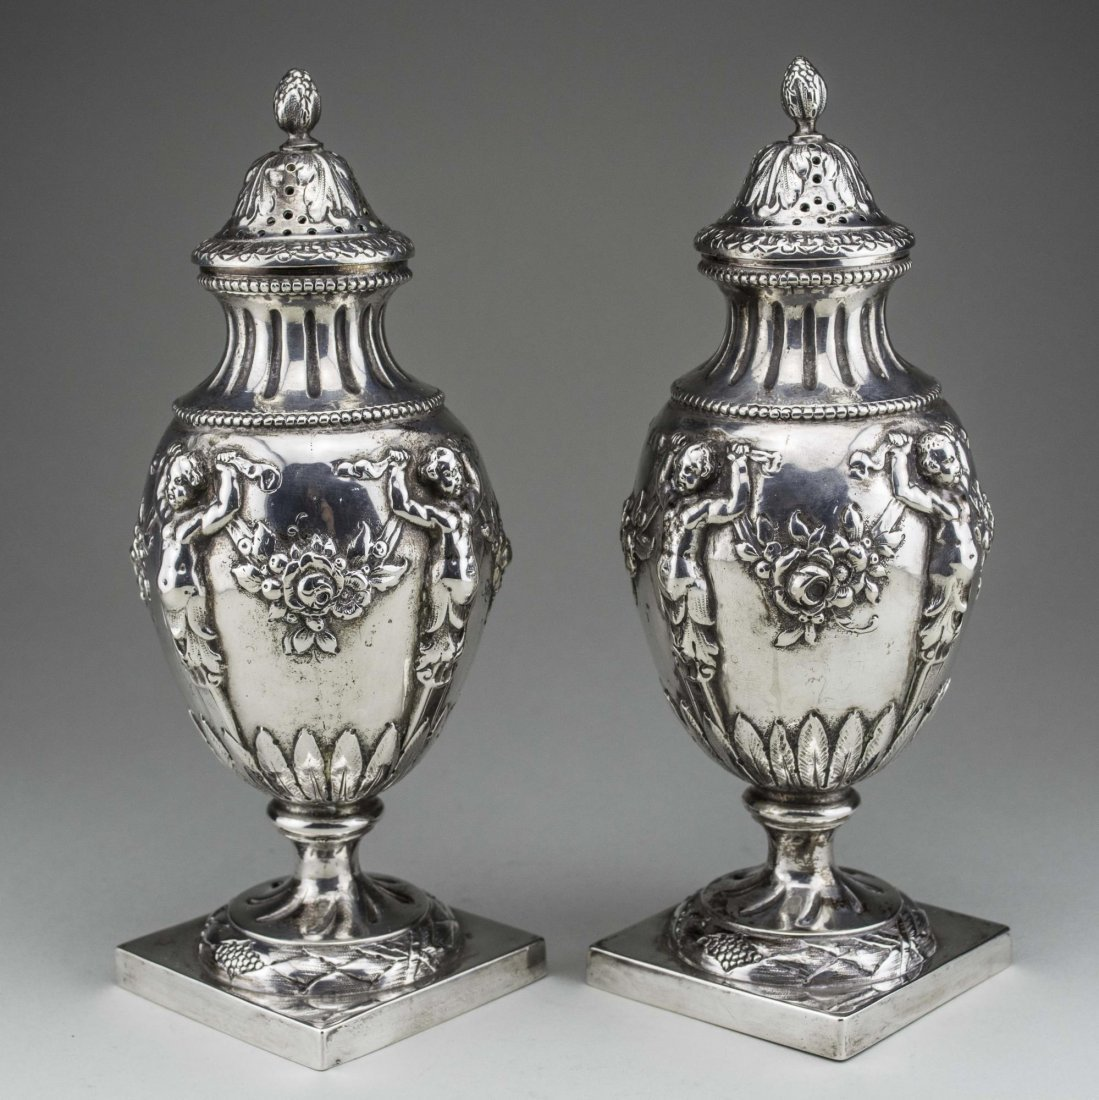 Pair of German Silver Casters - 2